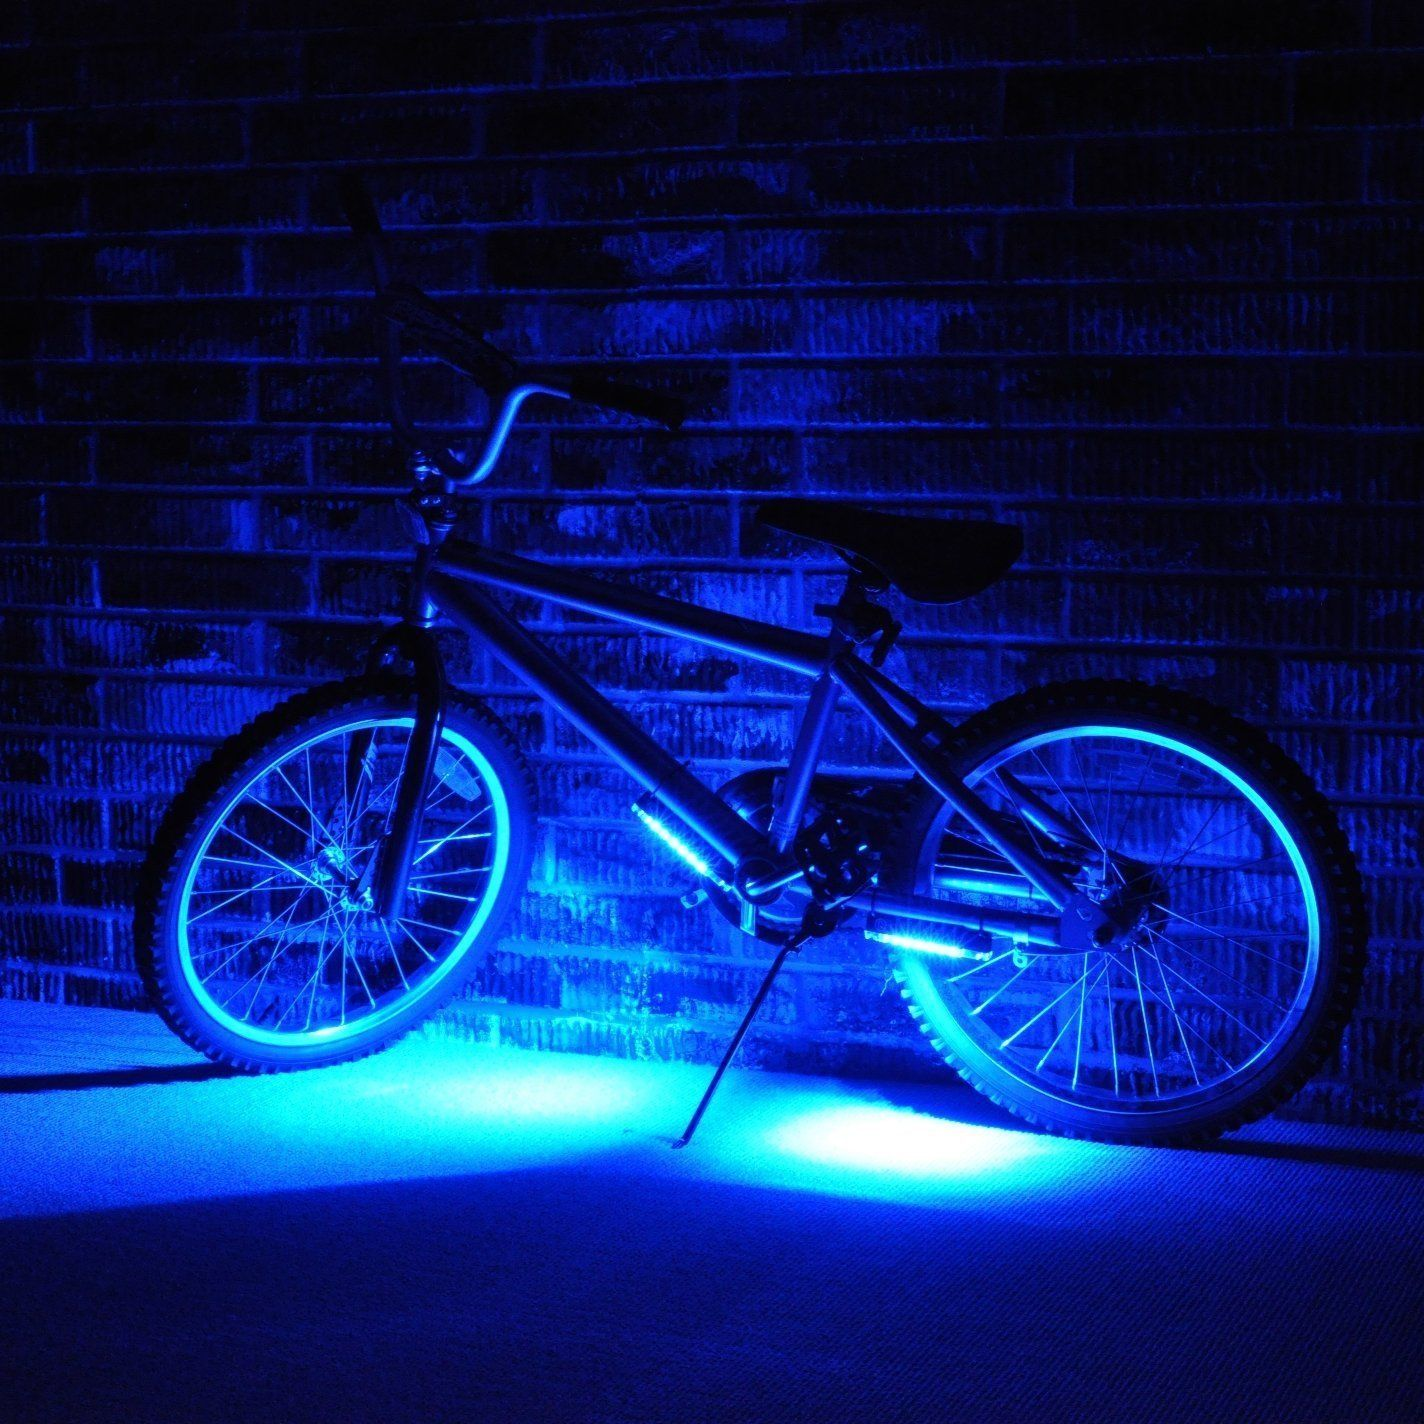 Pimp out your bike with Glow plasti dip